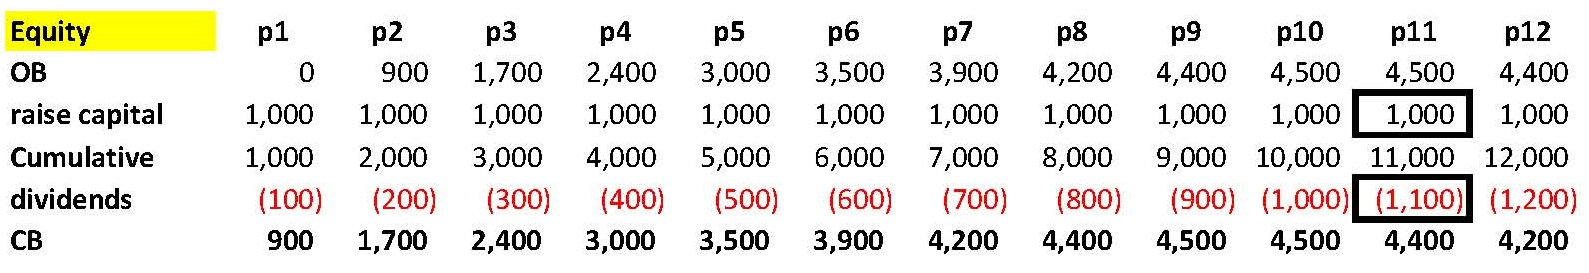 Dividend Payments Table